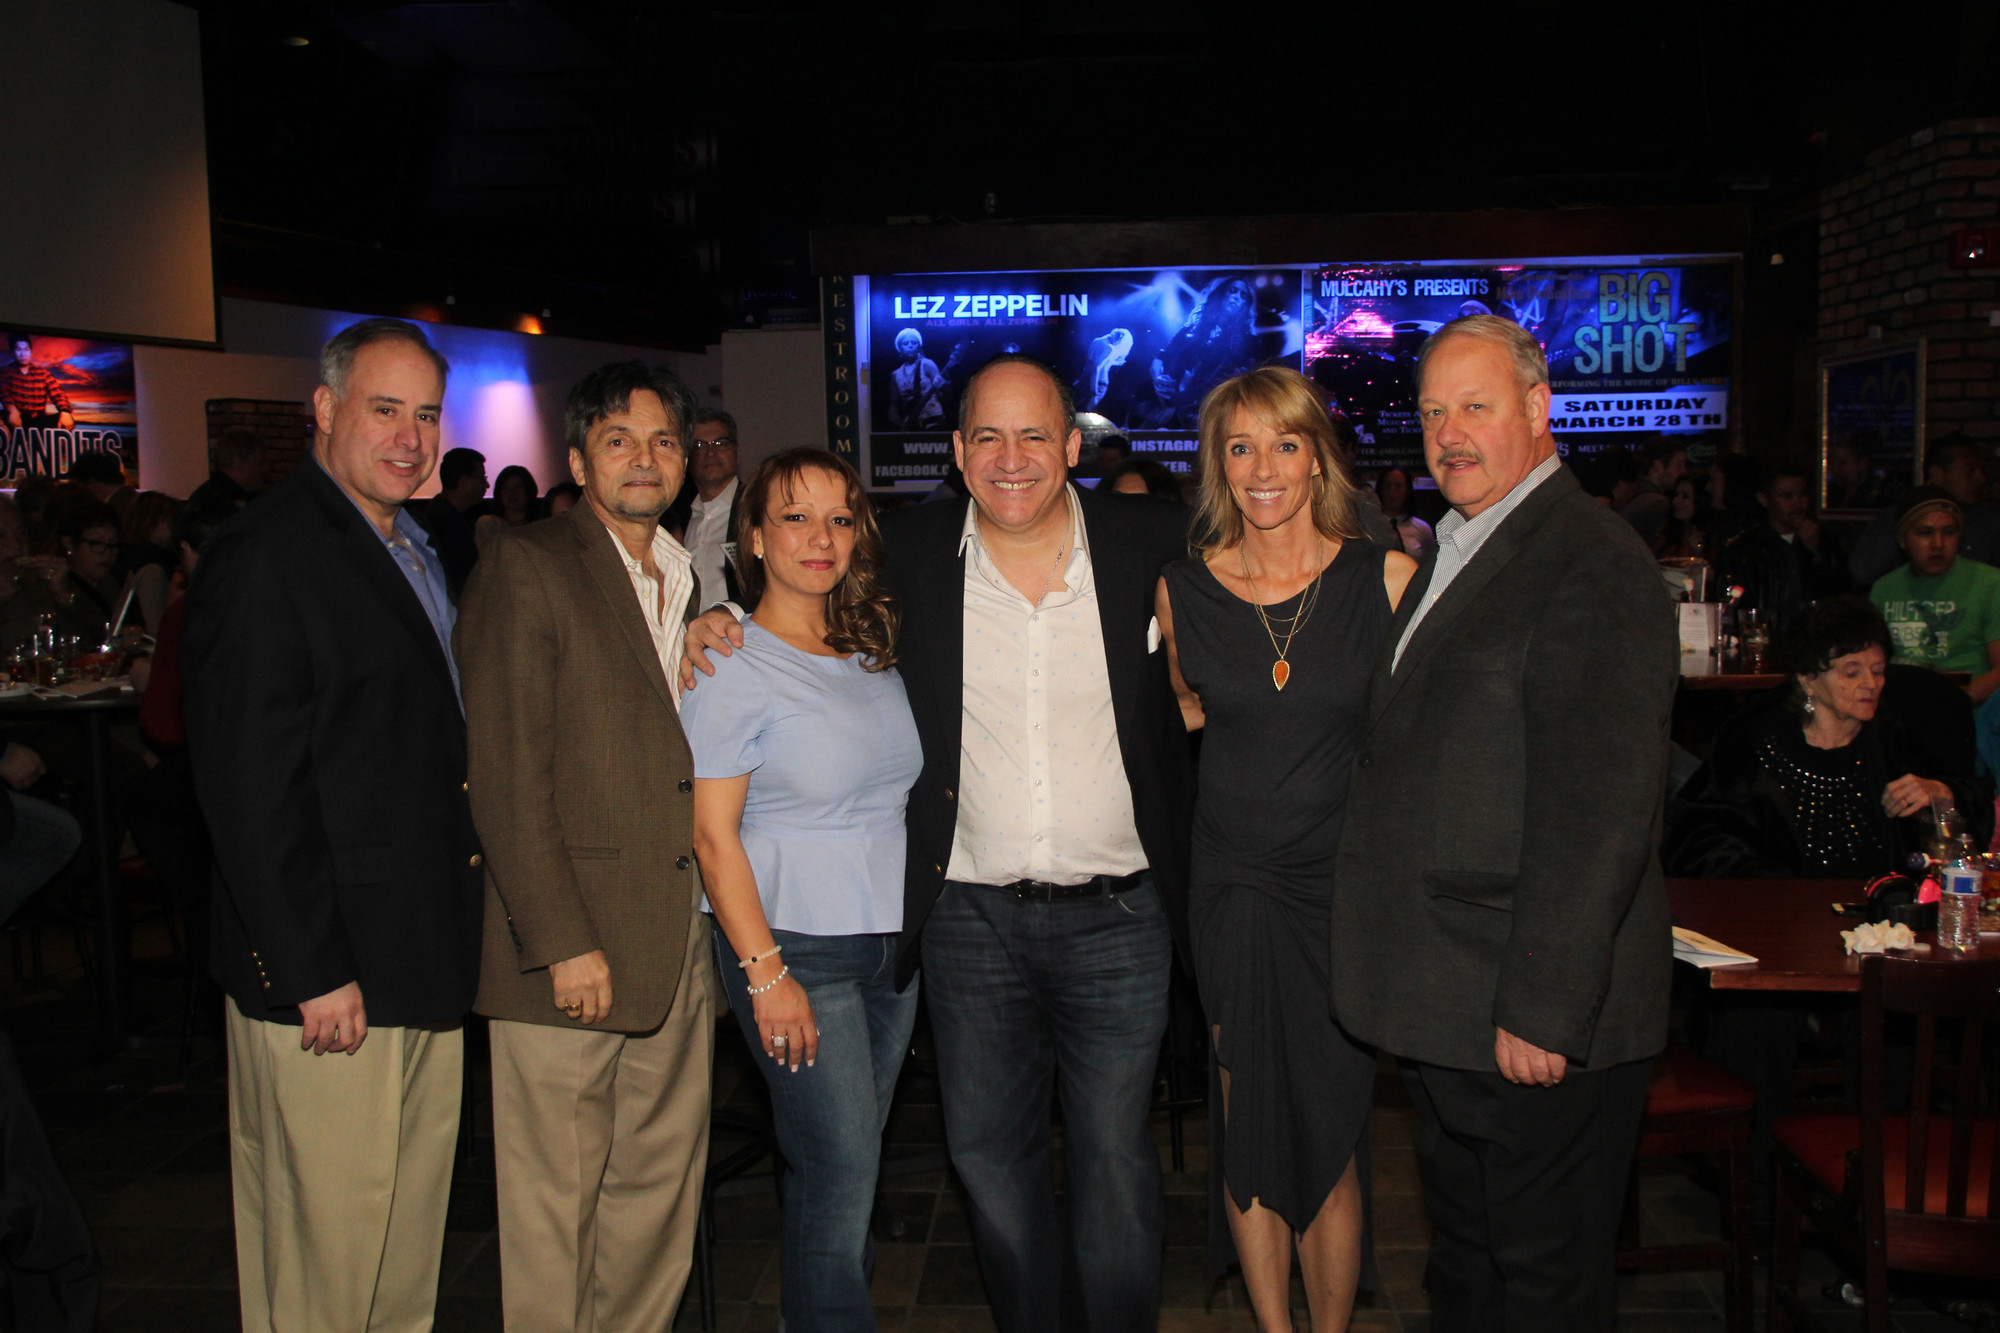 Freeport Chief of Police Miguel Bermudez, from left, Welquis Lopez, Elizabeth Londoño-Minier, Frank Minier, Freeport Trailer leader Liz O'Shaughnessy and Freeport Mayor Robert Kennedy.